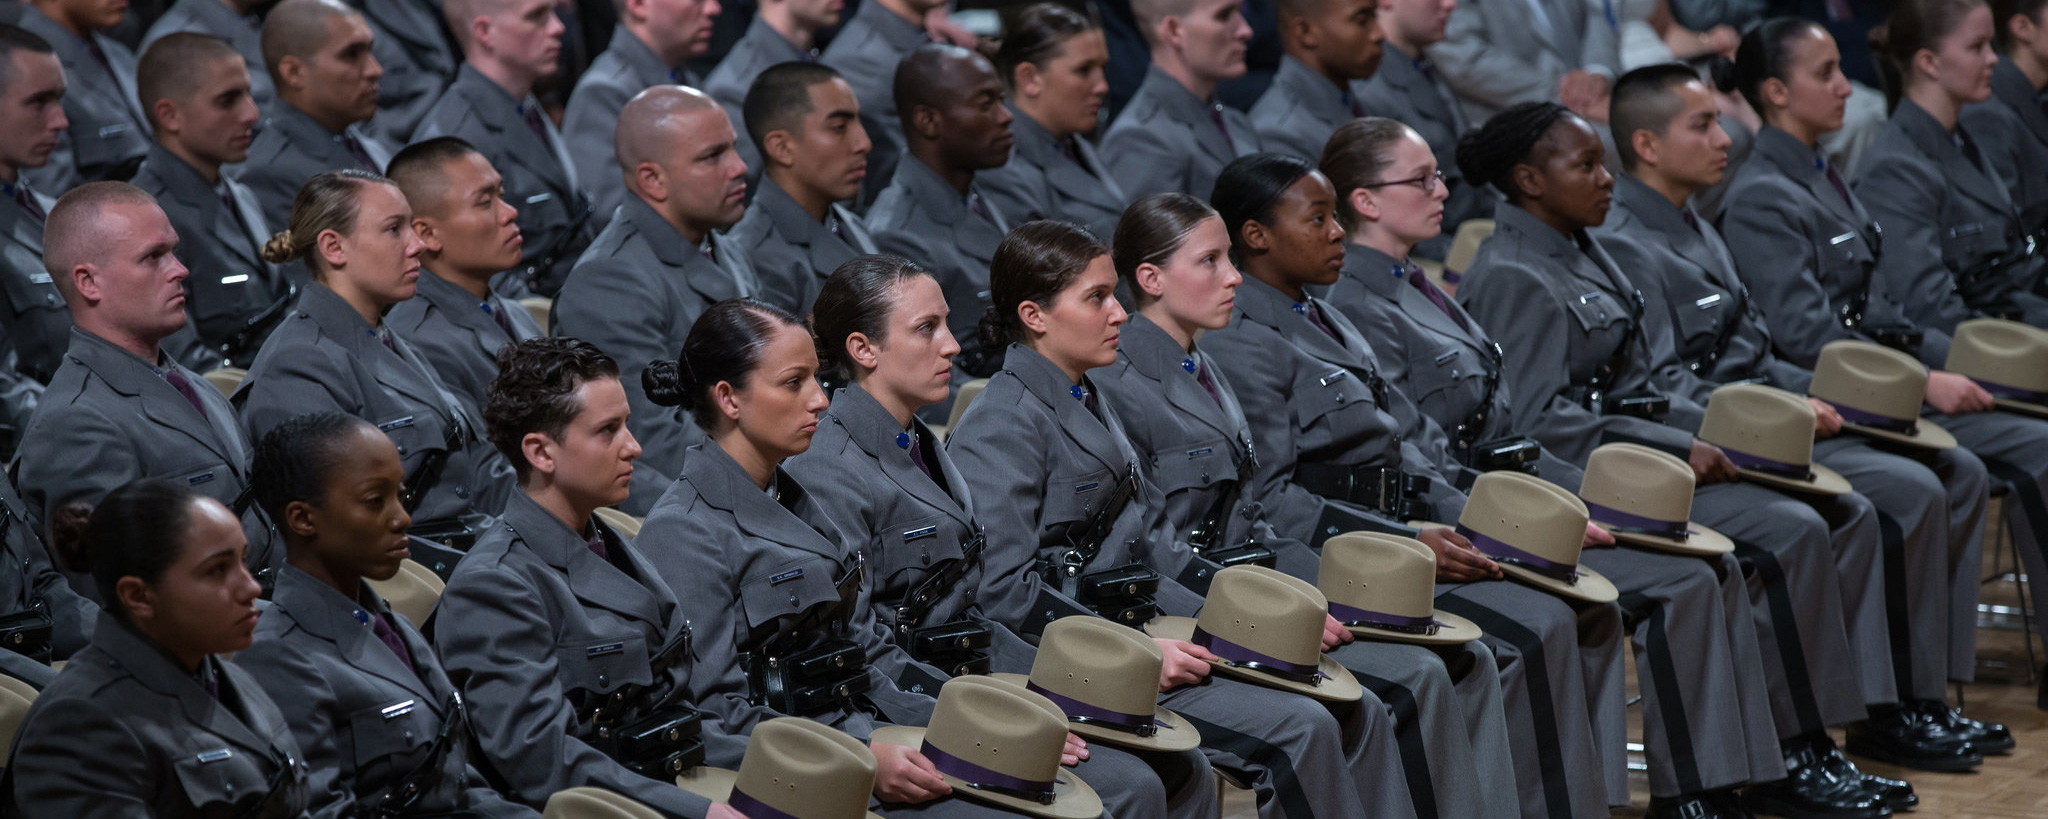 Find Out How To Become A New York State Trooper